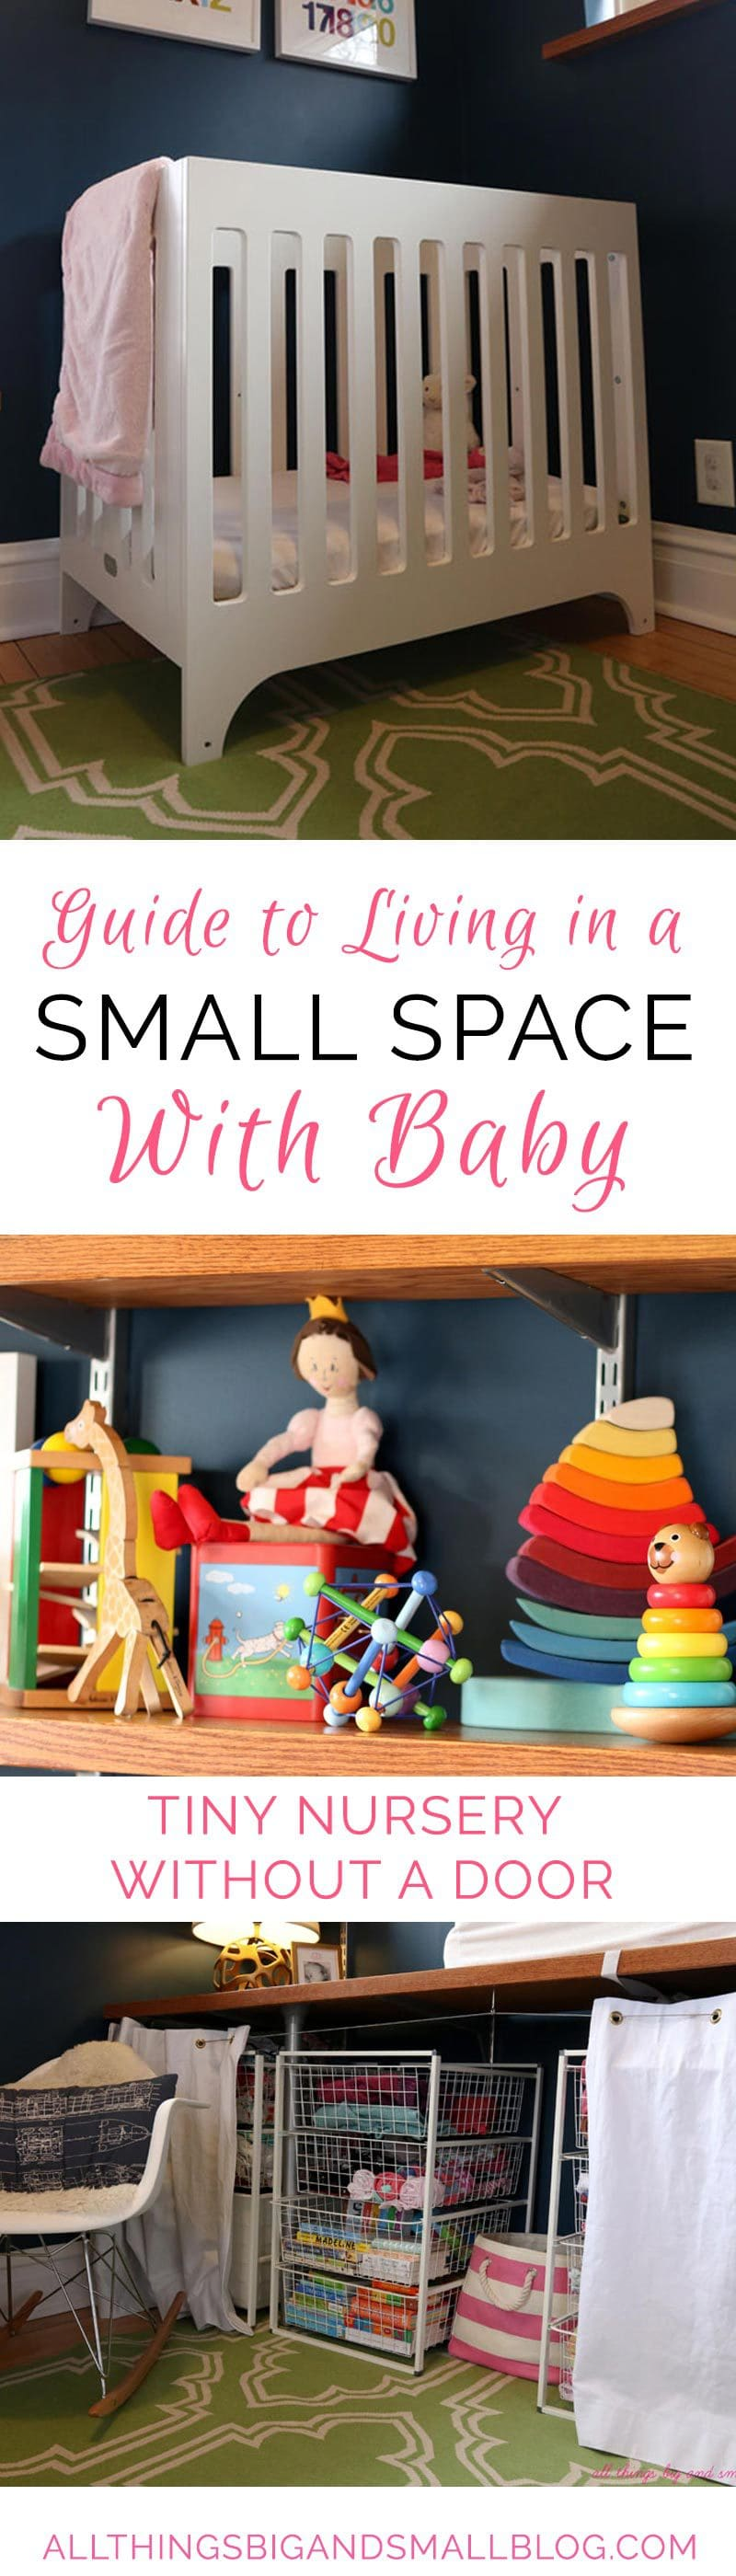 How To Live in a Small Space With Kids | Small Space With Baby | Small Nursery | Small Apartment With Kids | Small Space With Family | The Ultimate Guide: Small Space Living with a Baby by popular home decor blogger DIY Decor Mom